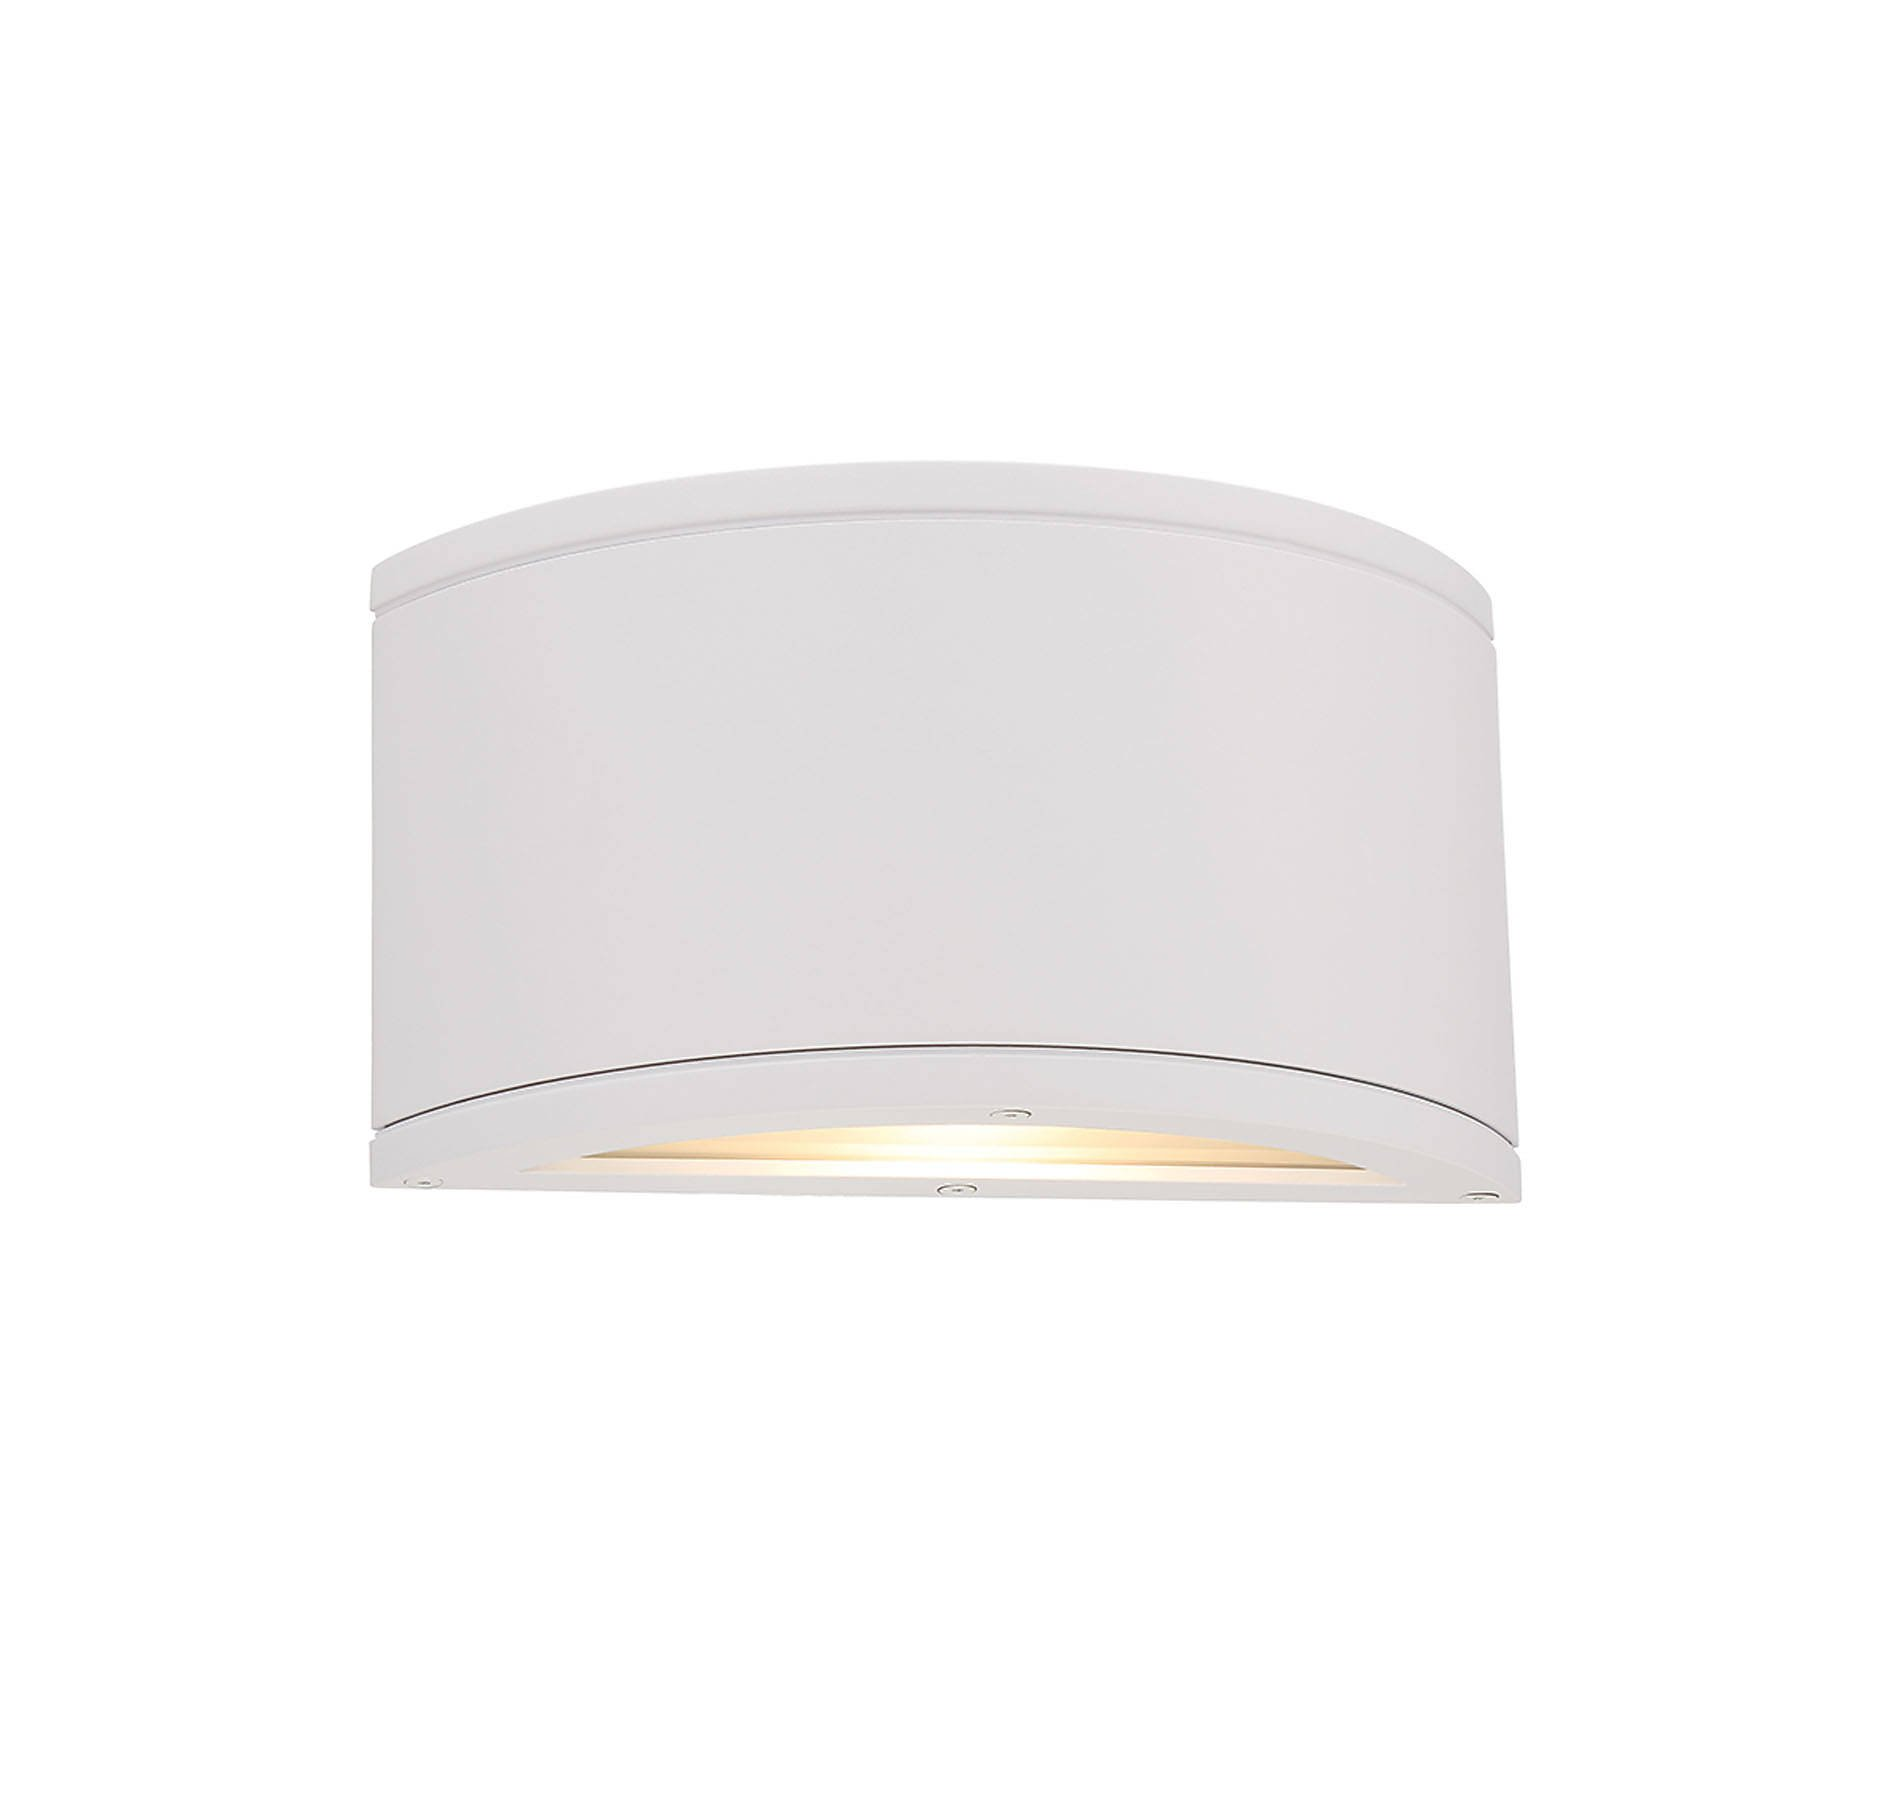 WAC Lighting WS-W2610-WT Tube LED Outdoor Half Cylinder Up and Down Wall Light Fixture, One Size, White